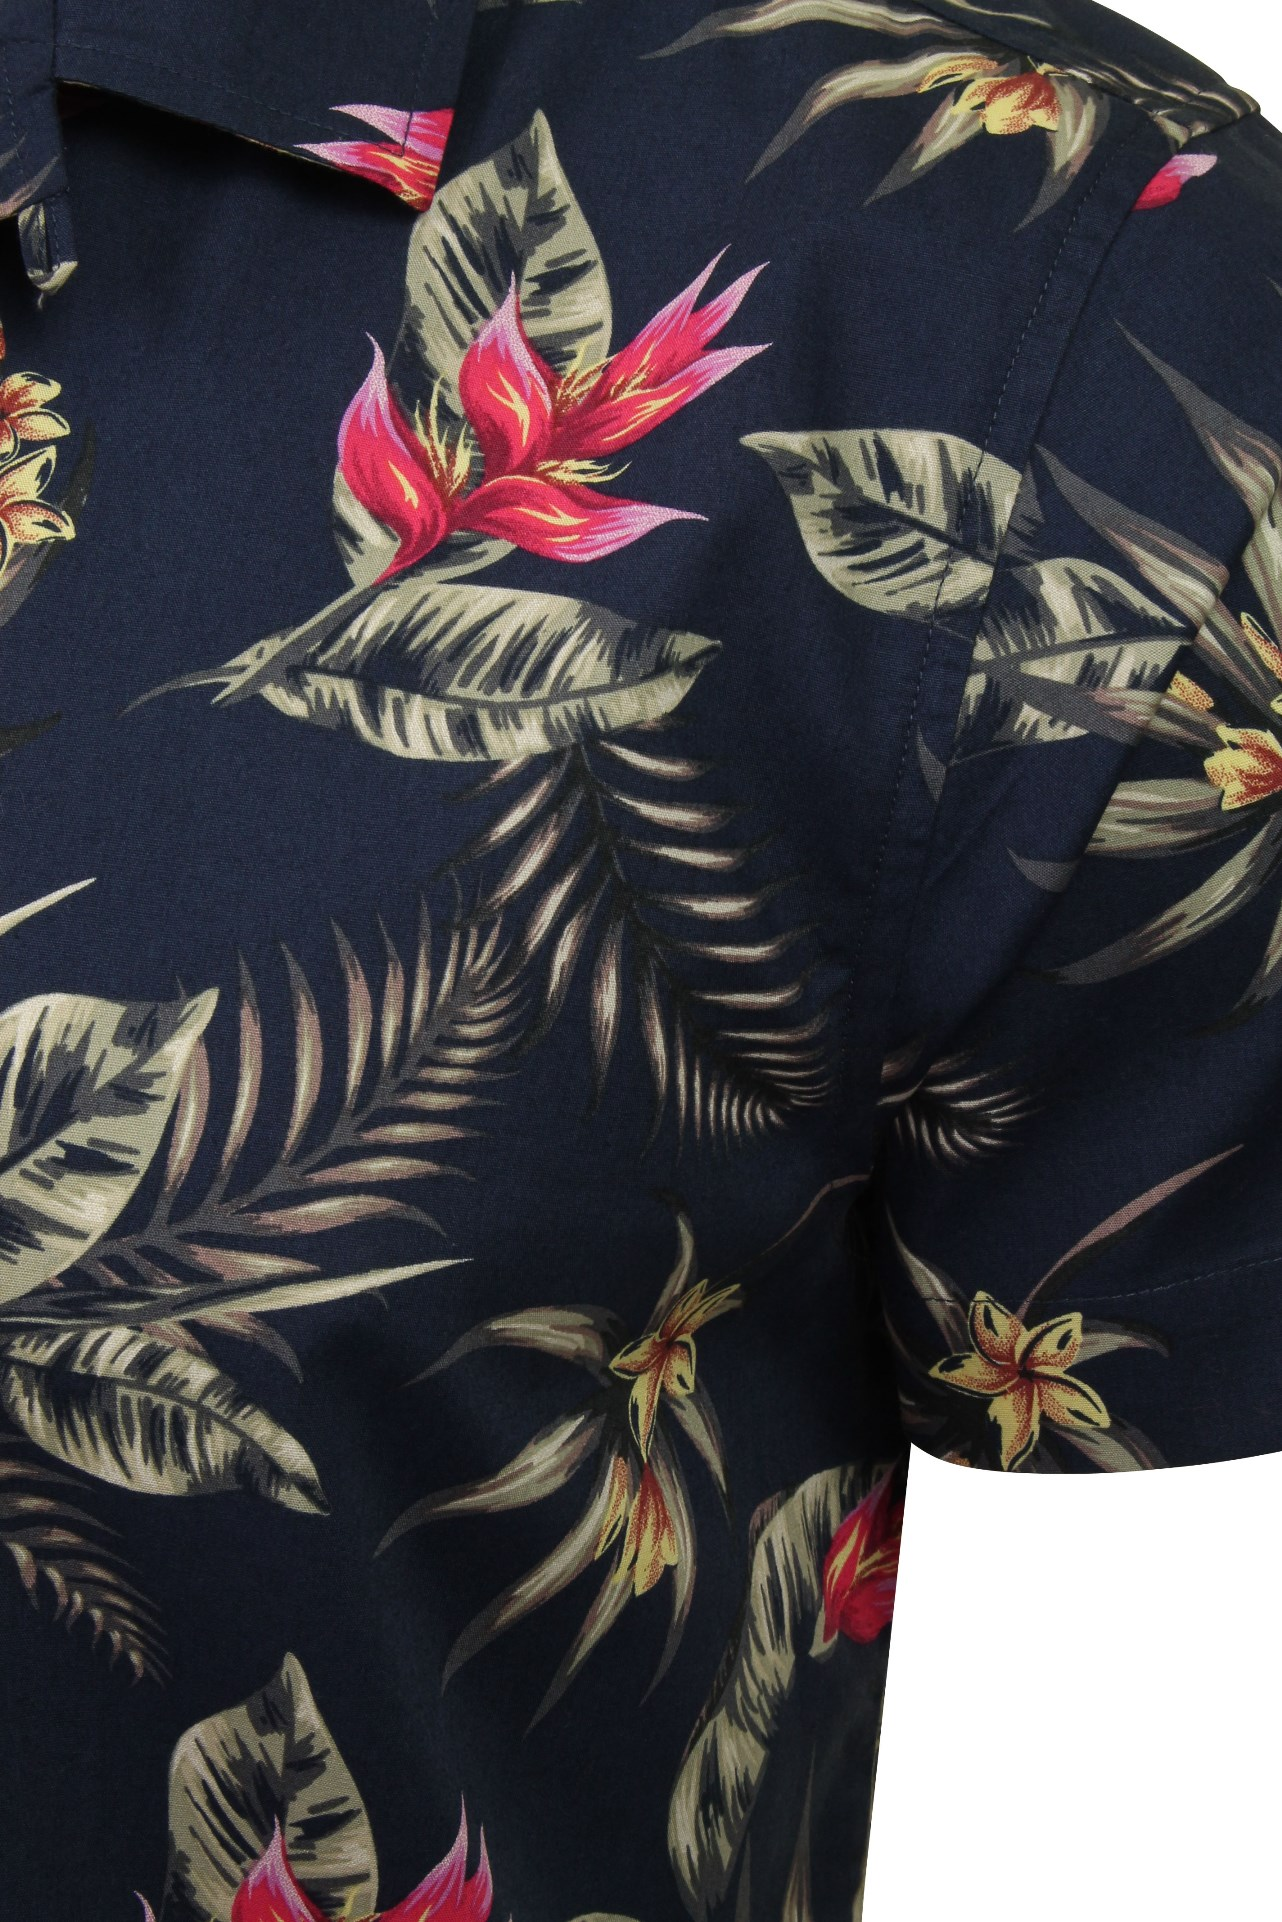 Hommes-Xact-Floral-Chemise-Hawaienne-a-Manches-Courtes miniature 4